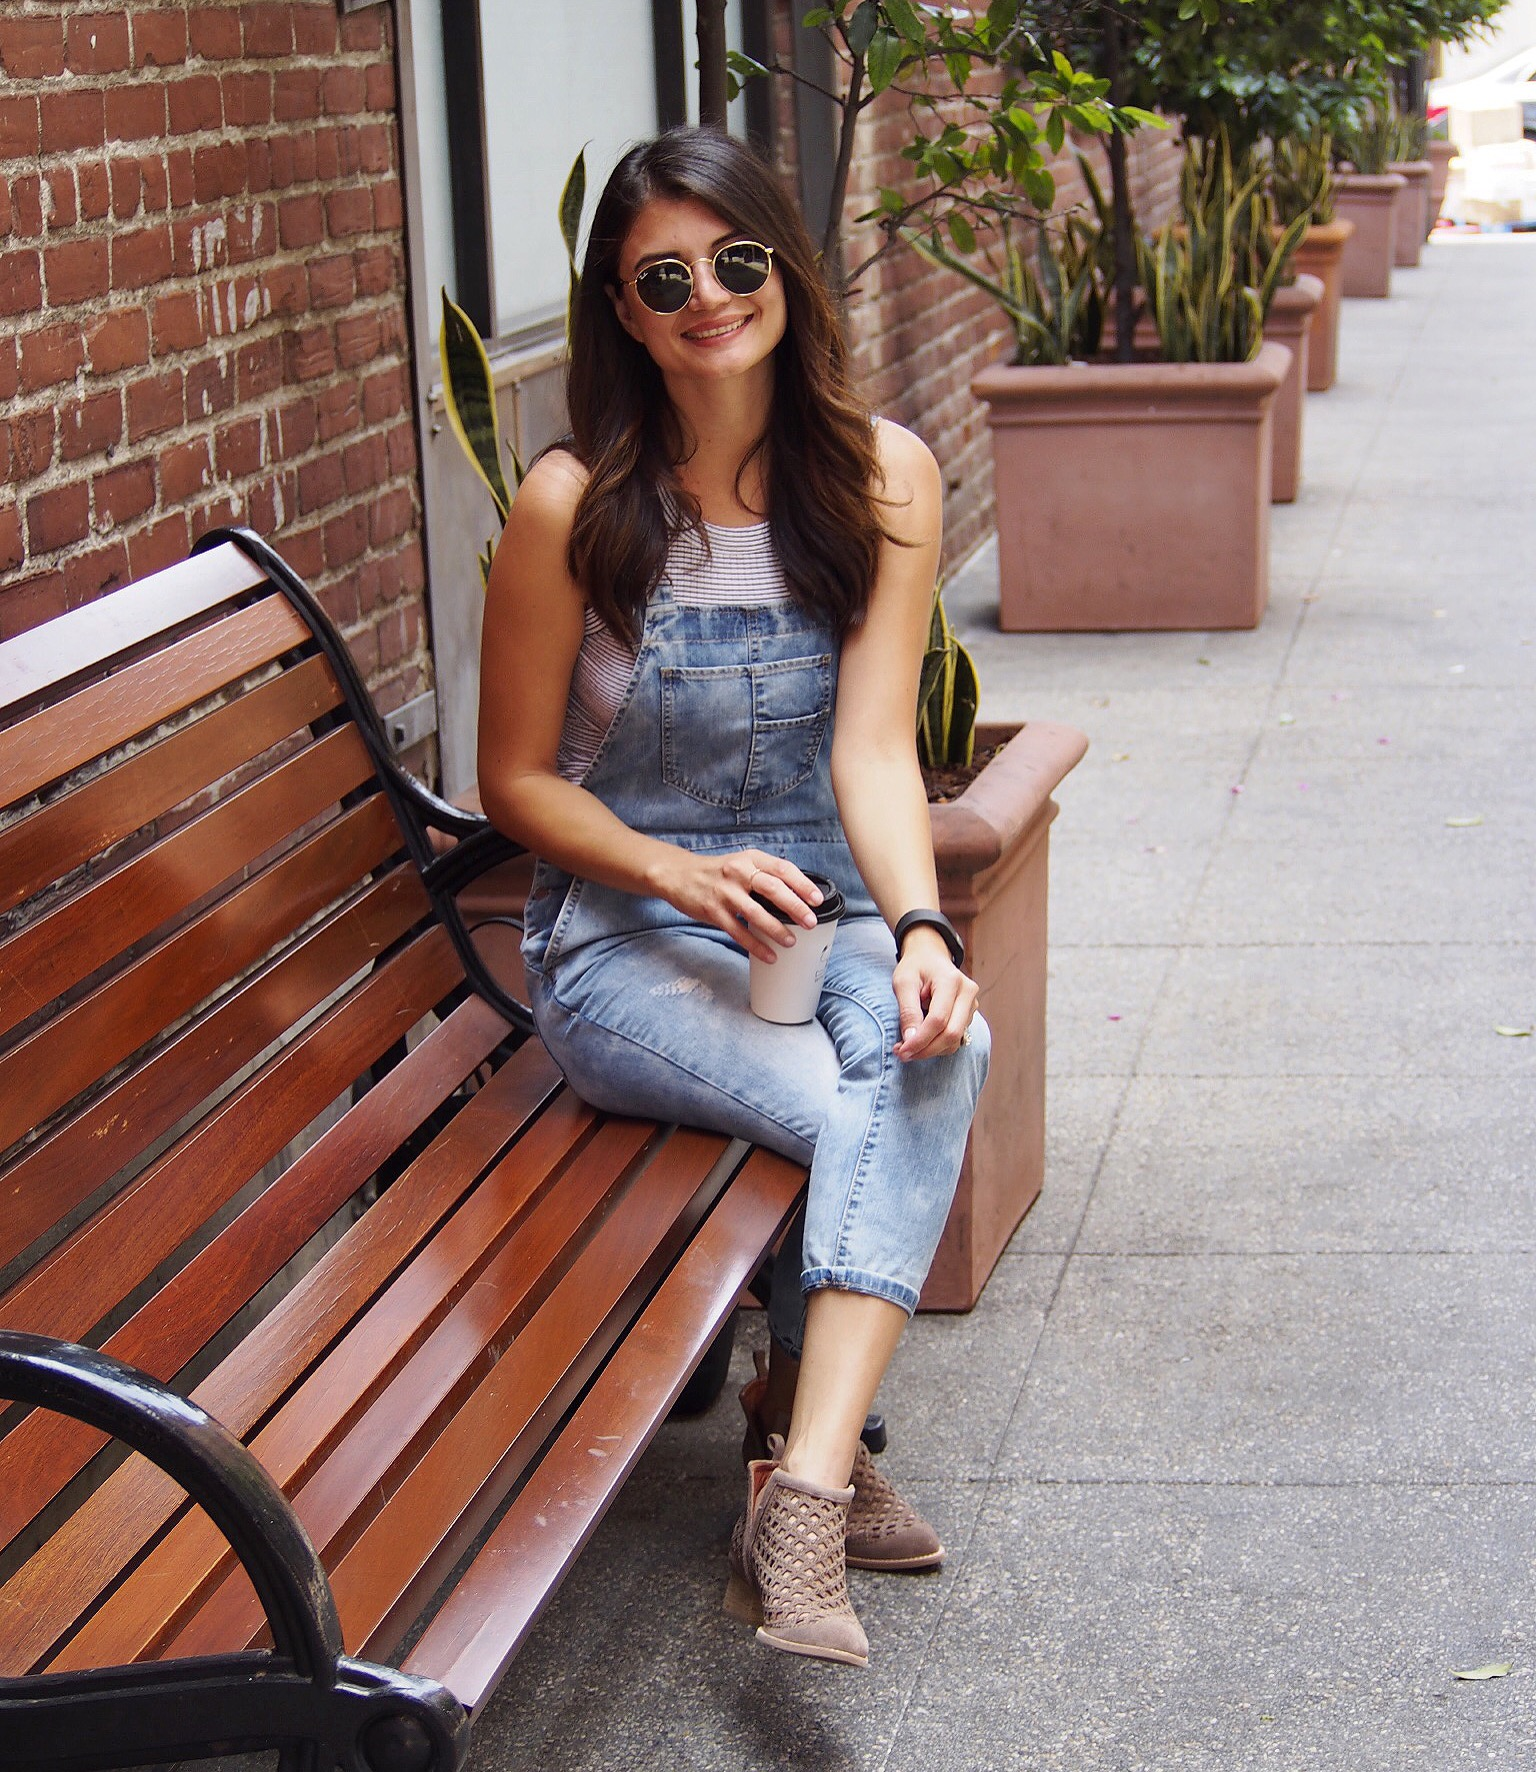 Top: Zara. Overalls: Forever 21. Booties: Jeffrey Campbell. Sunglasses: Ray-Ban